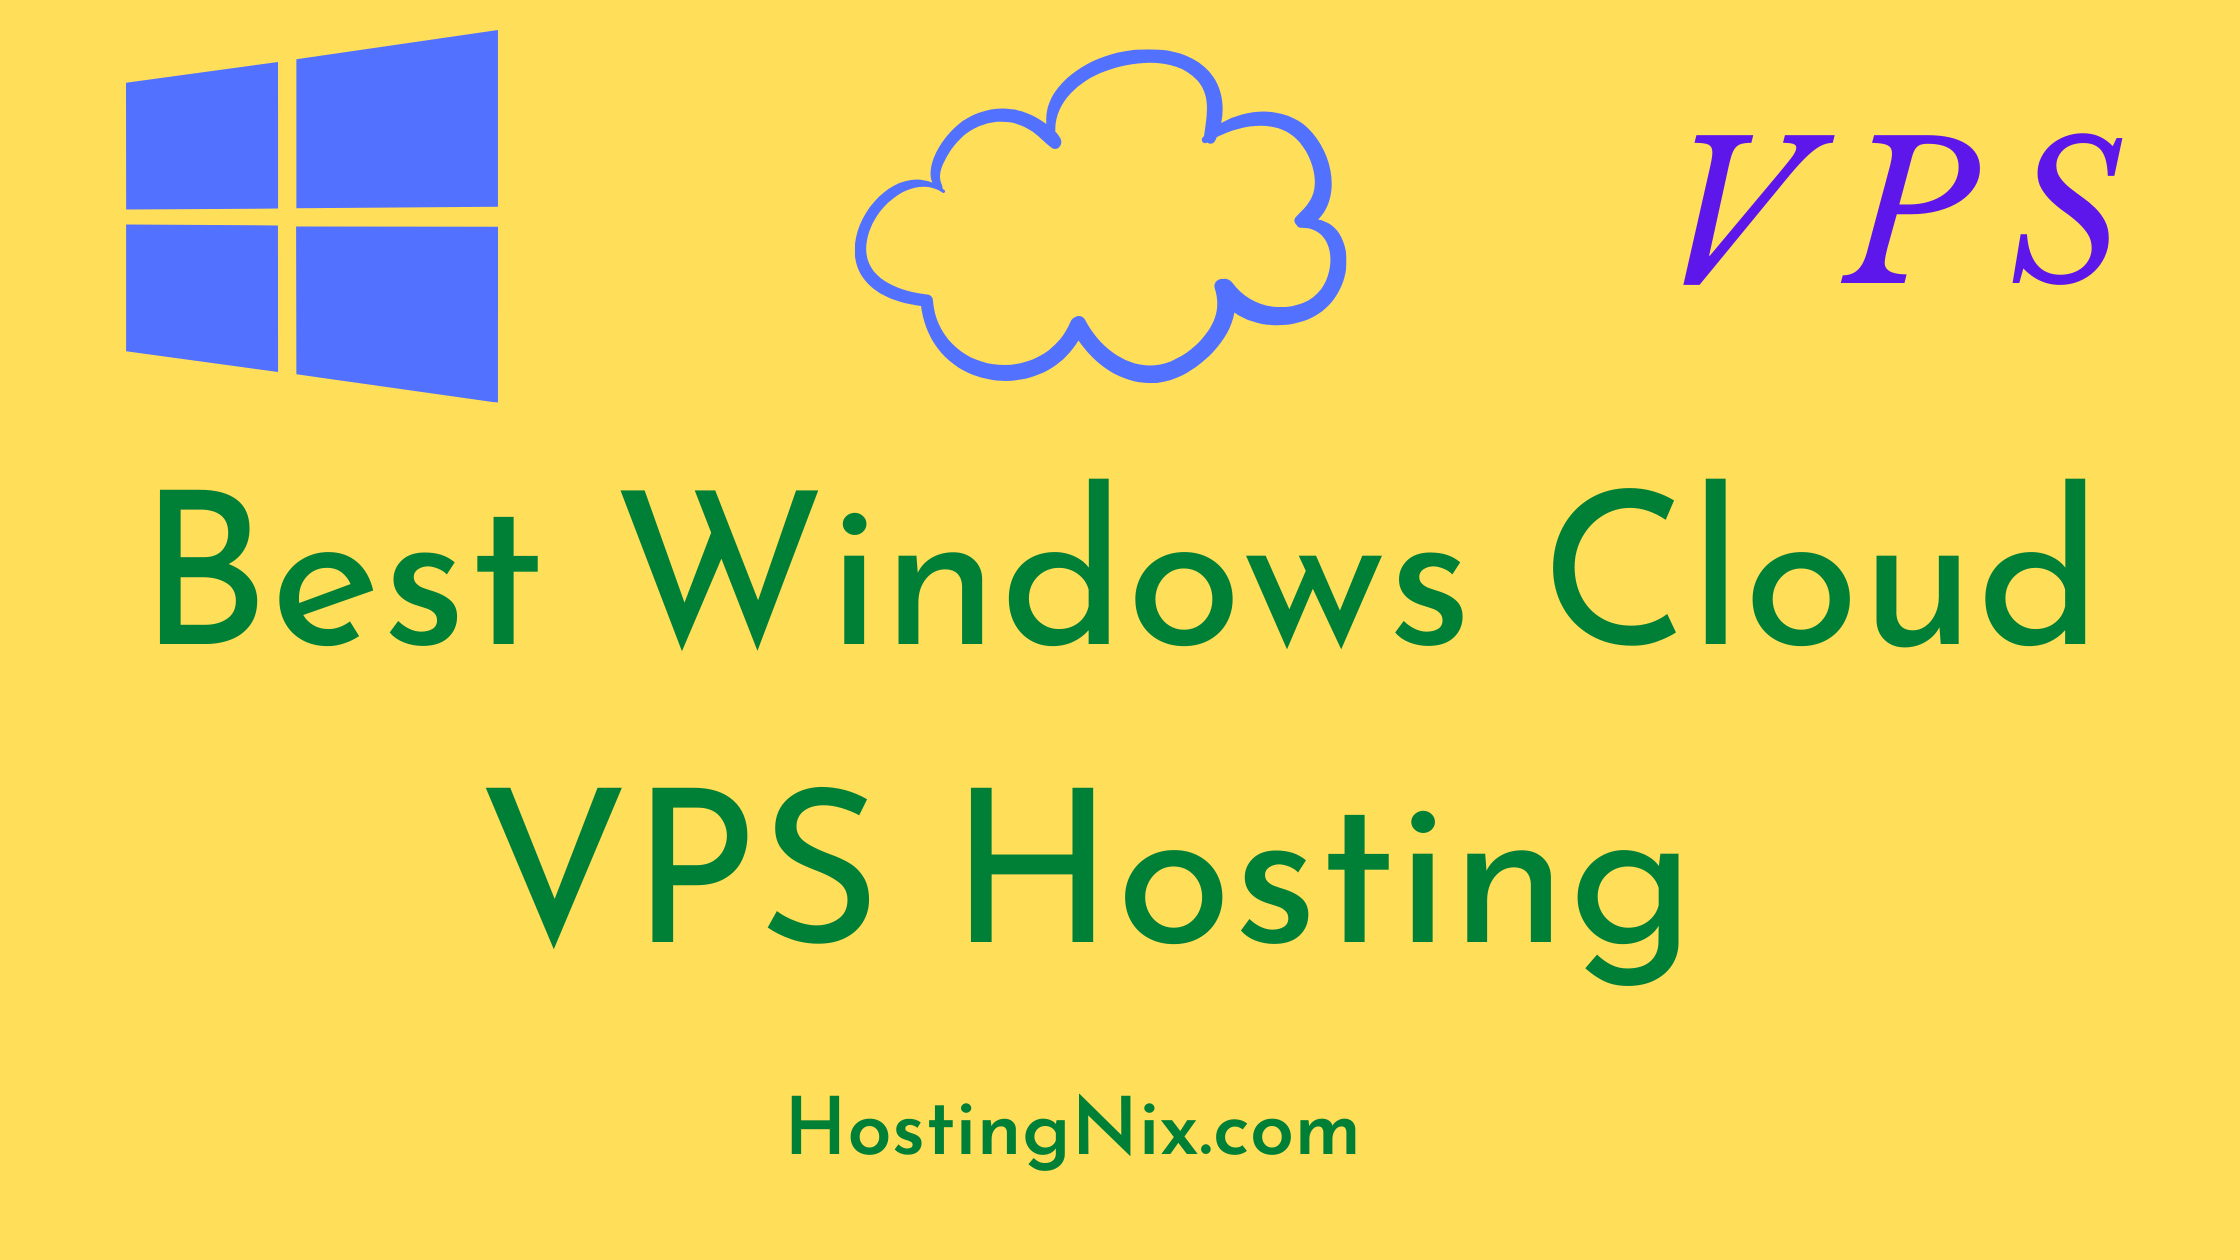 Best Windows Cloud VPS Hosting